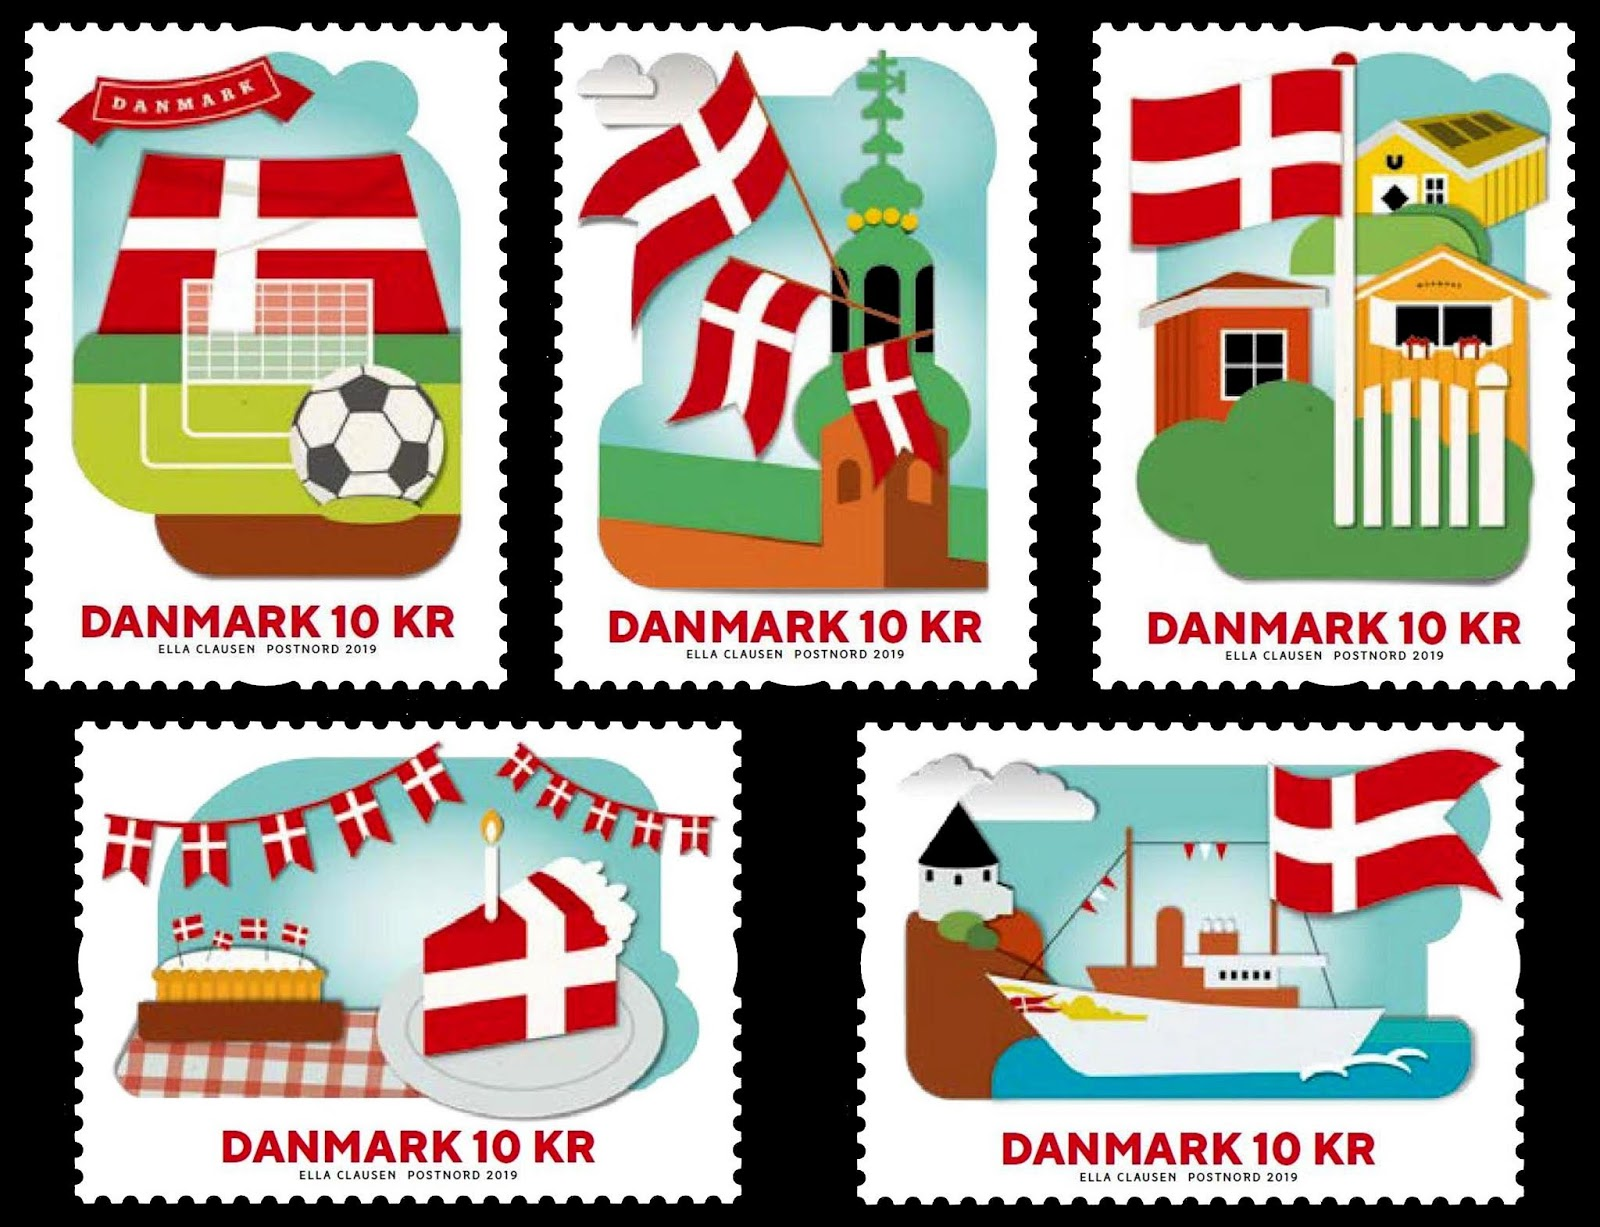 Denmark - Danish National Flag (January 2, 2019) - image from Gulfman Stamps World blog